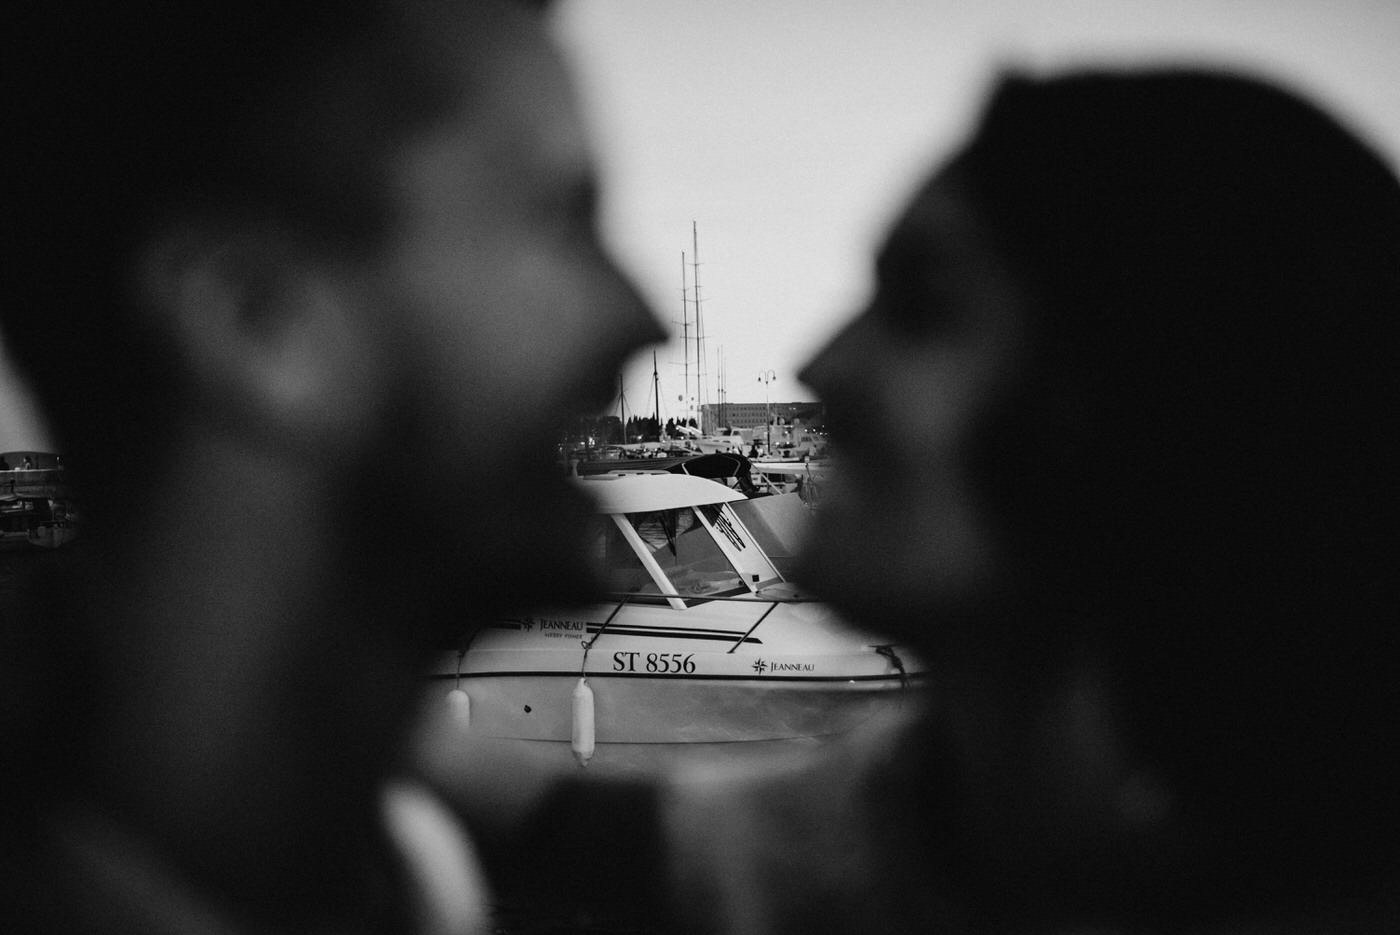 engagement elopement photographer split croatia rk 056 - Elopement Photographer Split Croatia